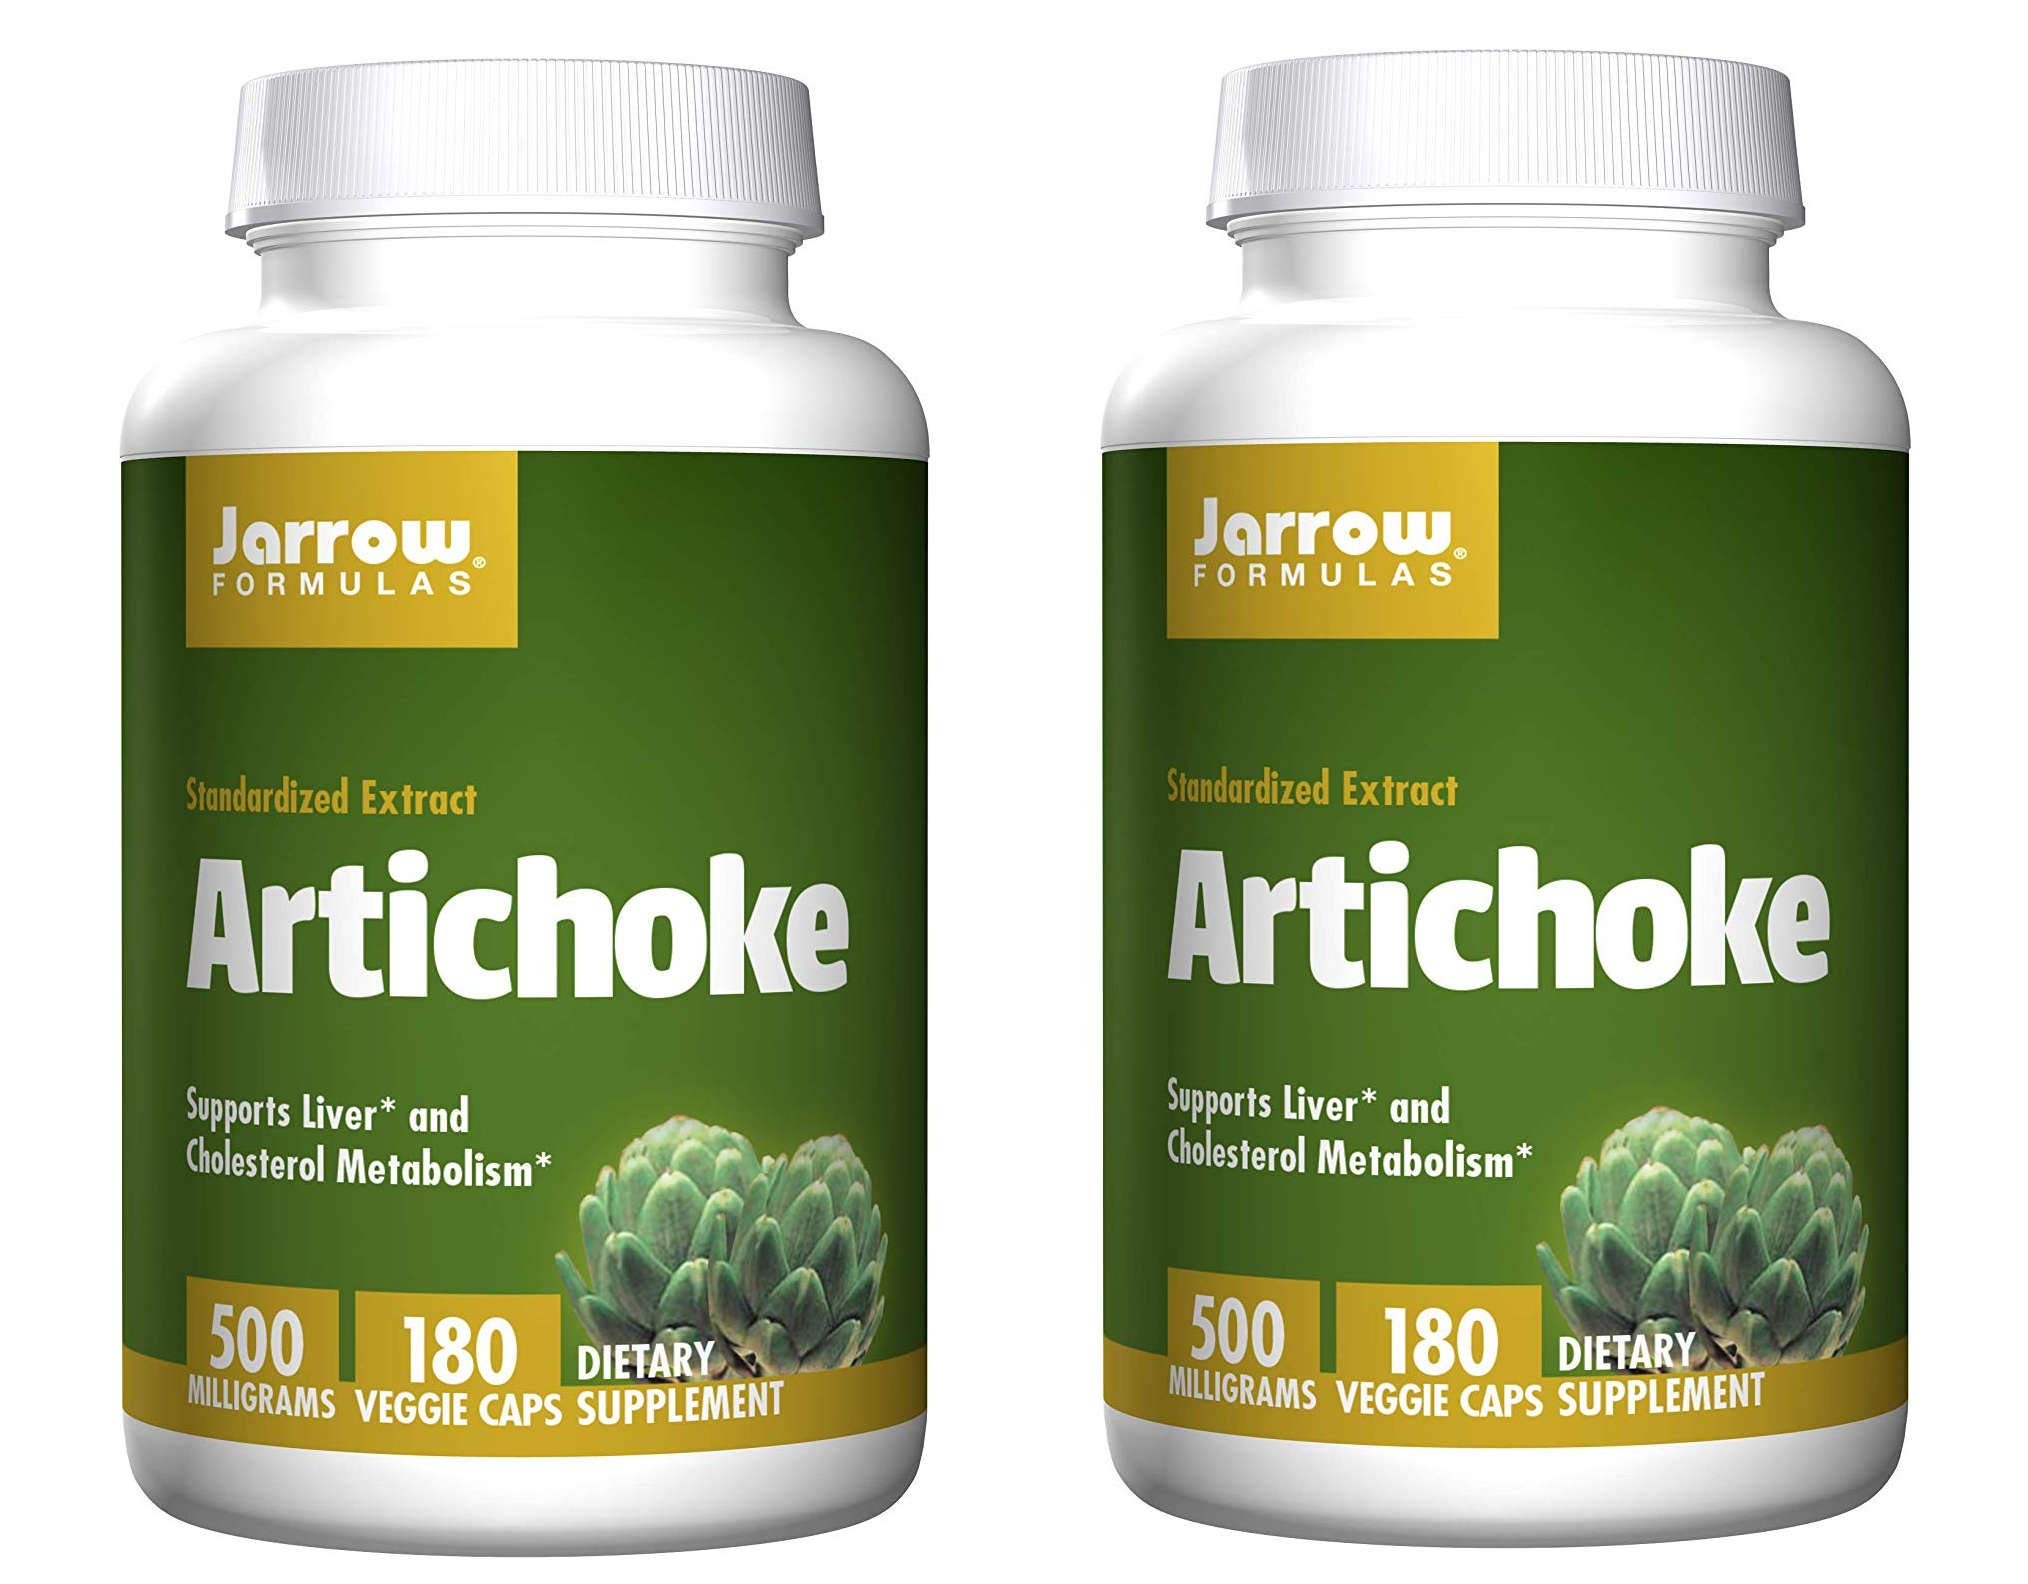 Jarrow Formulas Artichoke Standardized Extract for Healthy Liver and Cholesterol Metabolism 500 Milligrams (180 Veggie Caps) Pack of 2